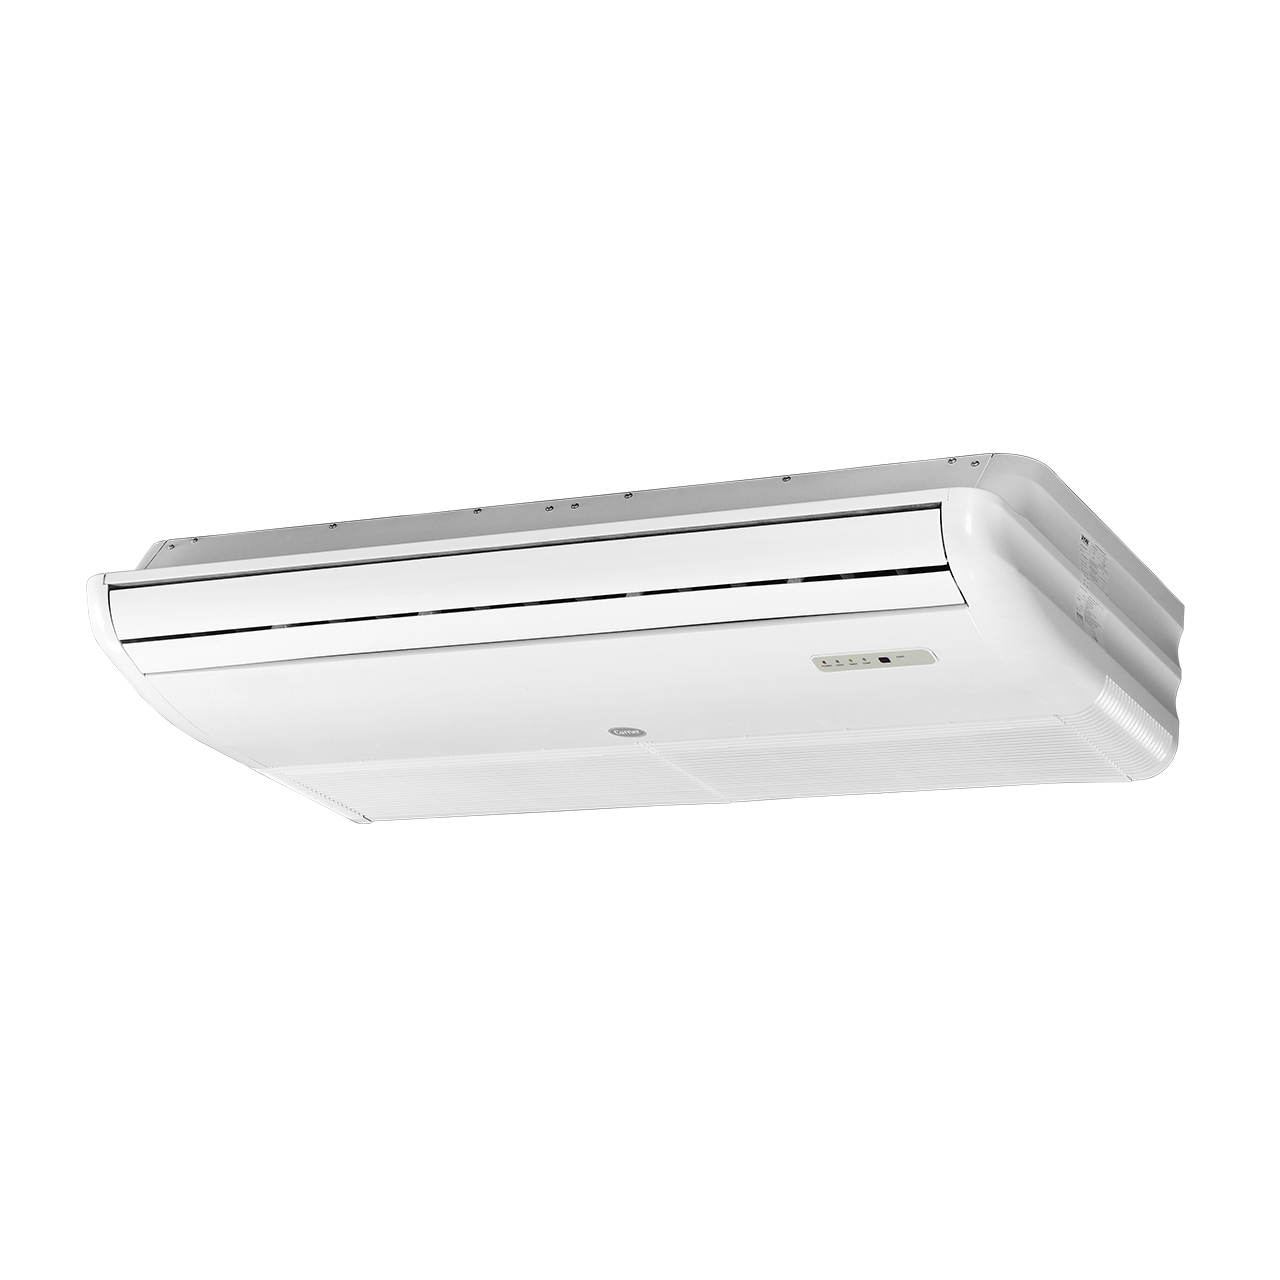 xct7-indoor-units-flexceiling-AC